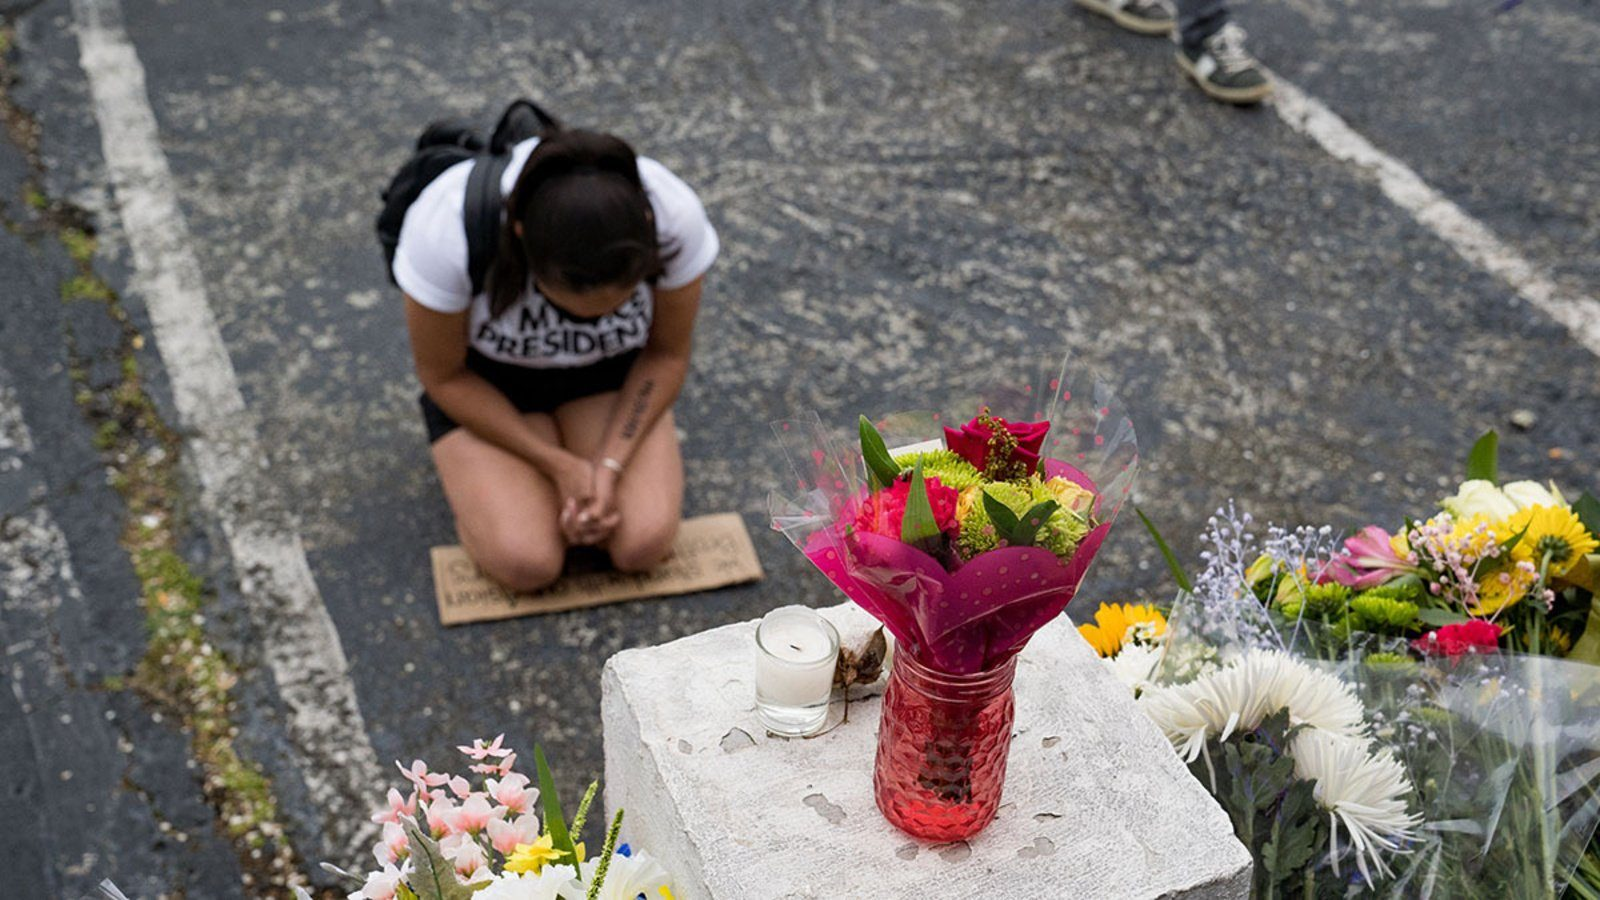 A woman kneels on a concrete parking lot in front of bouquets of flowers